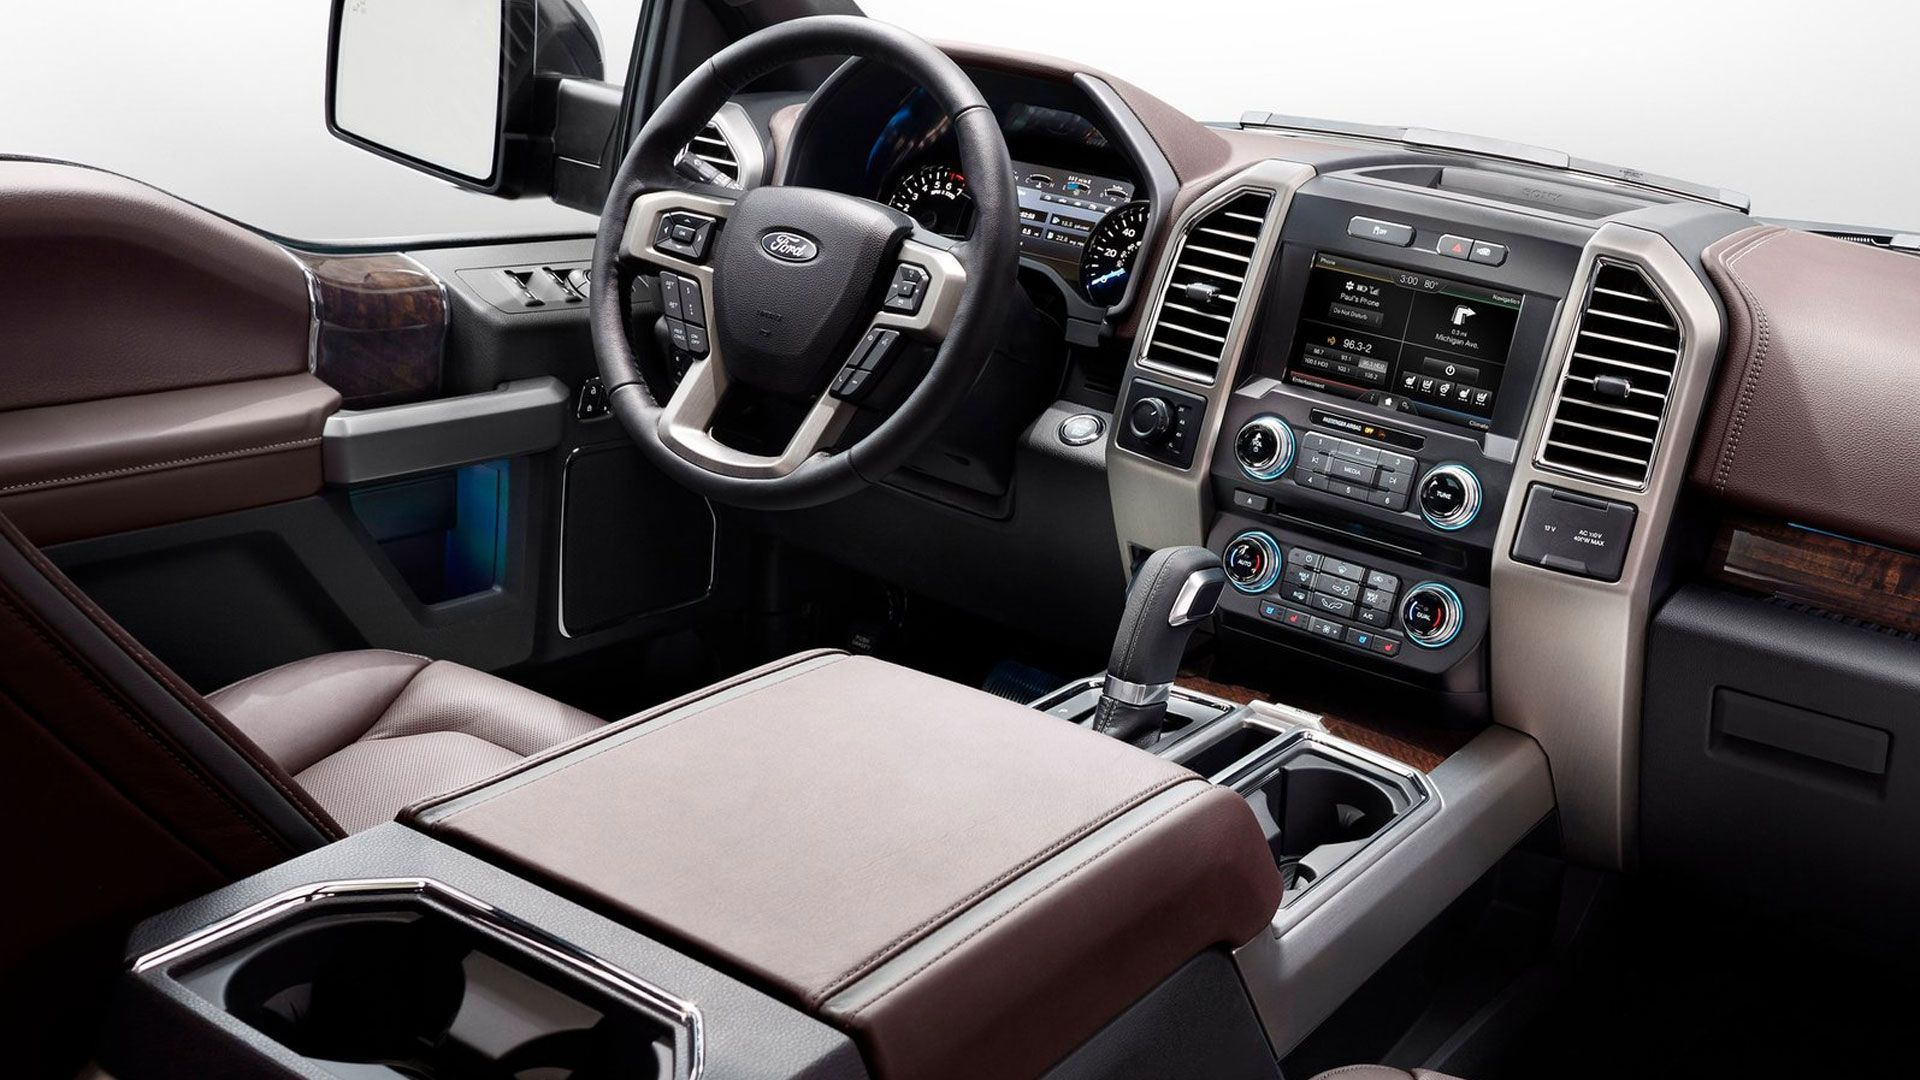 2015 Ford F150 Interior Design 2015 Ford F 150 Full Features Truck